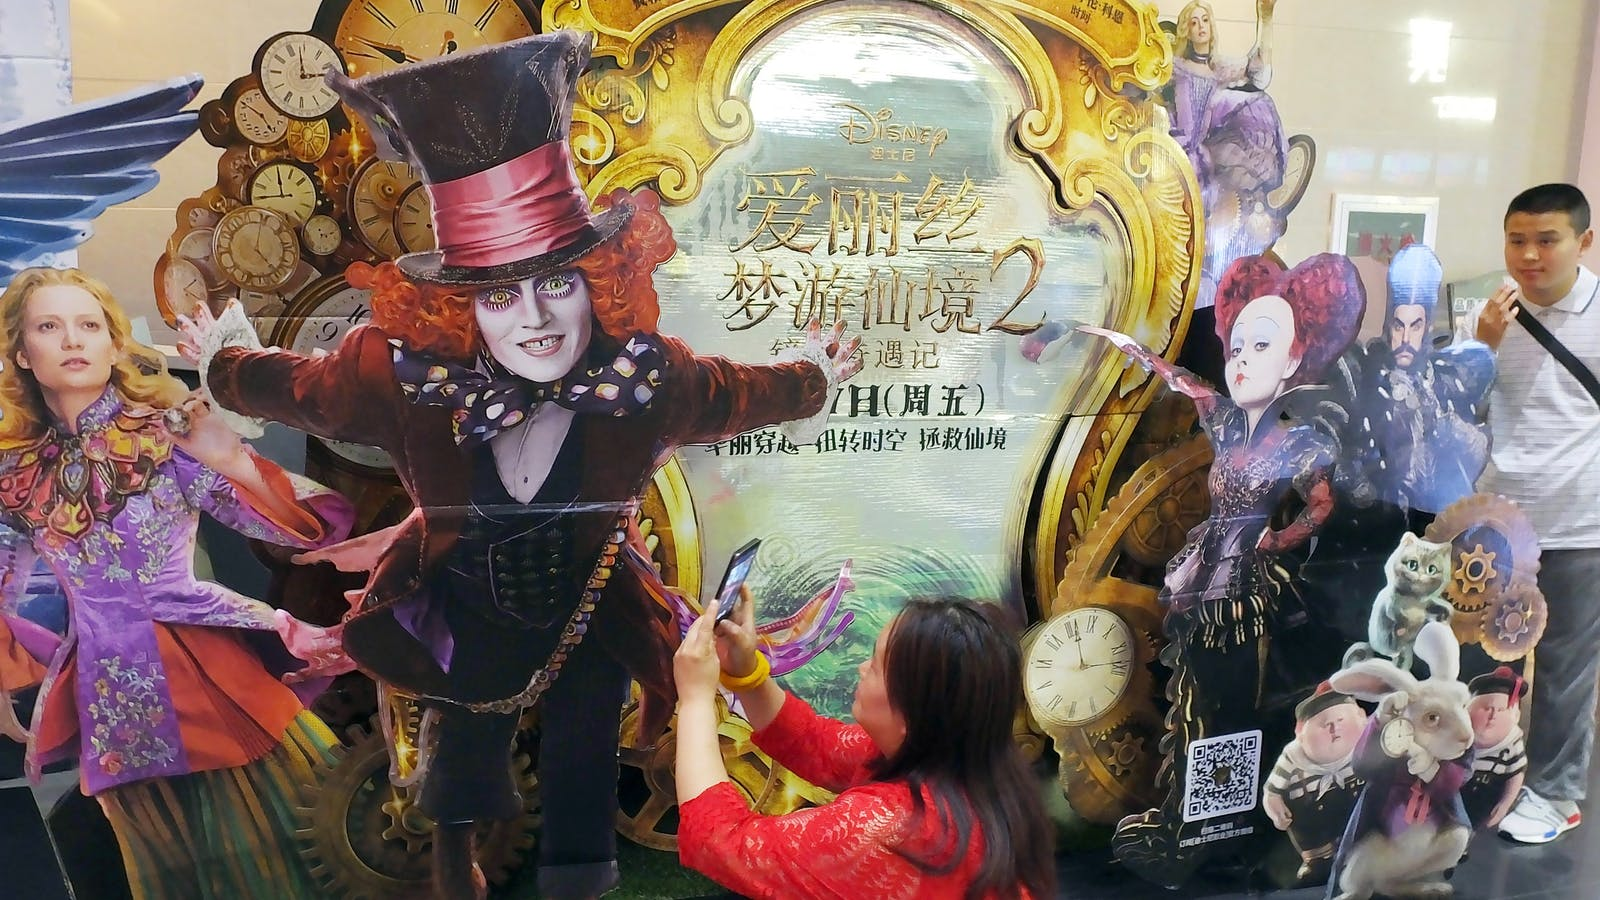 """A poster for the Disney movie """"Alice Through the Looking Glass"""" at a movie theater in Yichang in China in 2016. Photo by AP."""